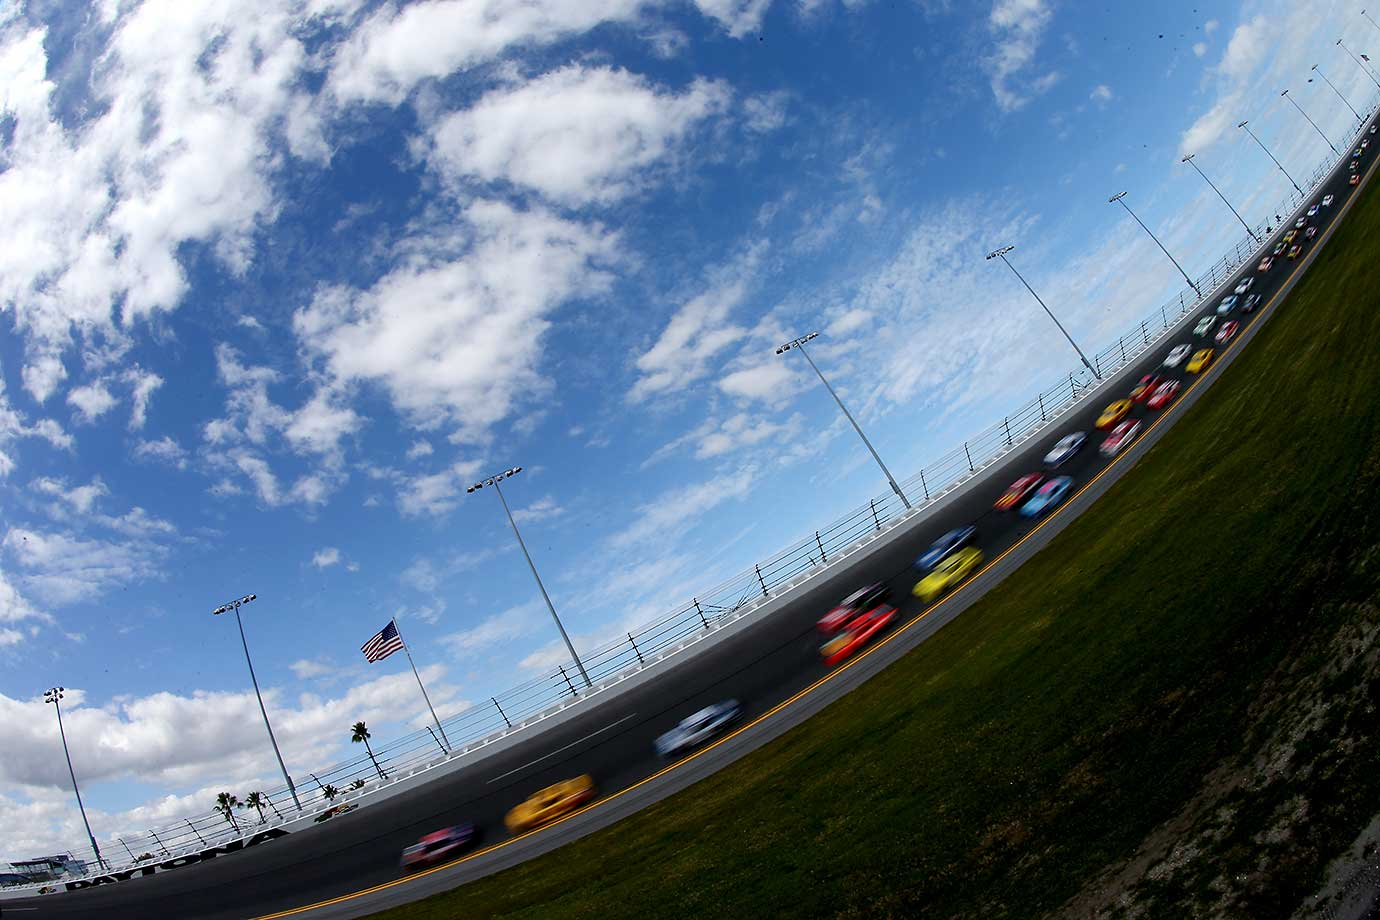 The weather was great for this year's Daytona 500.